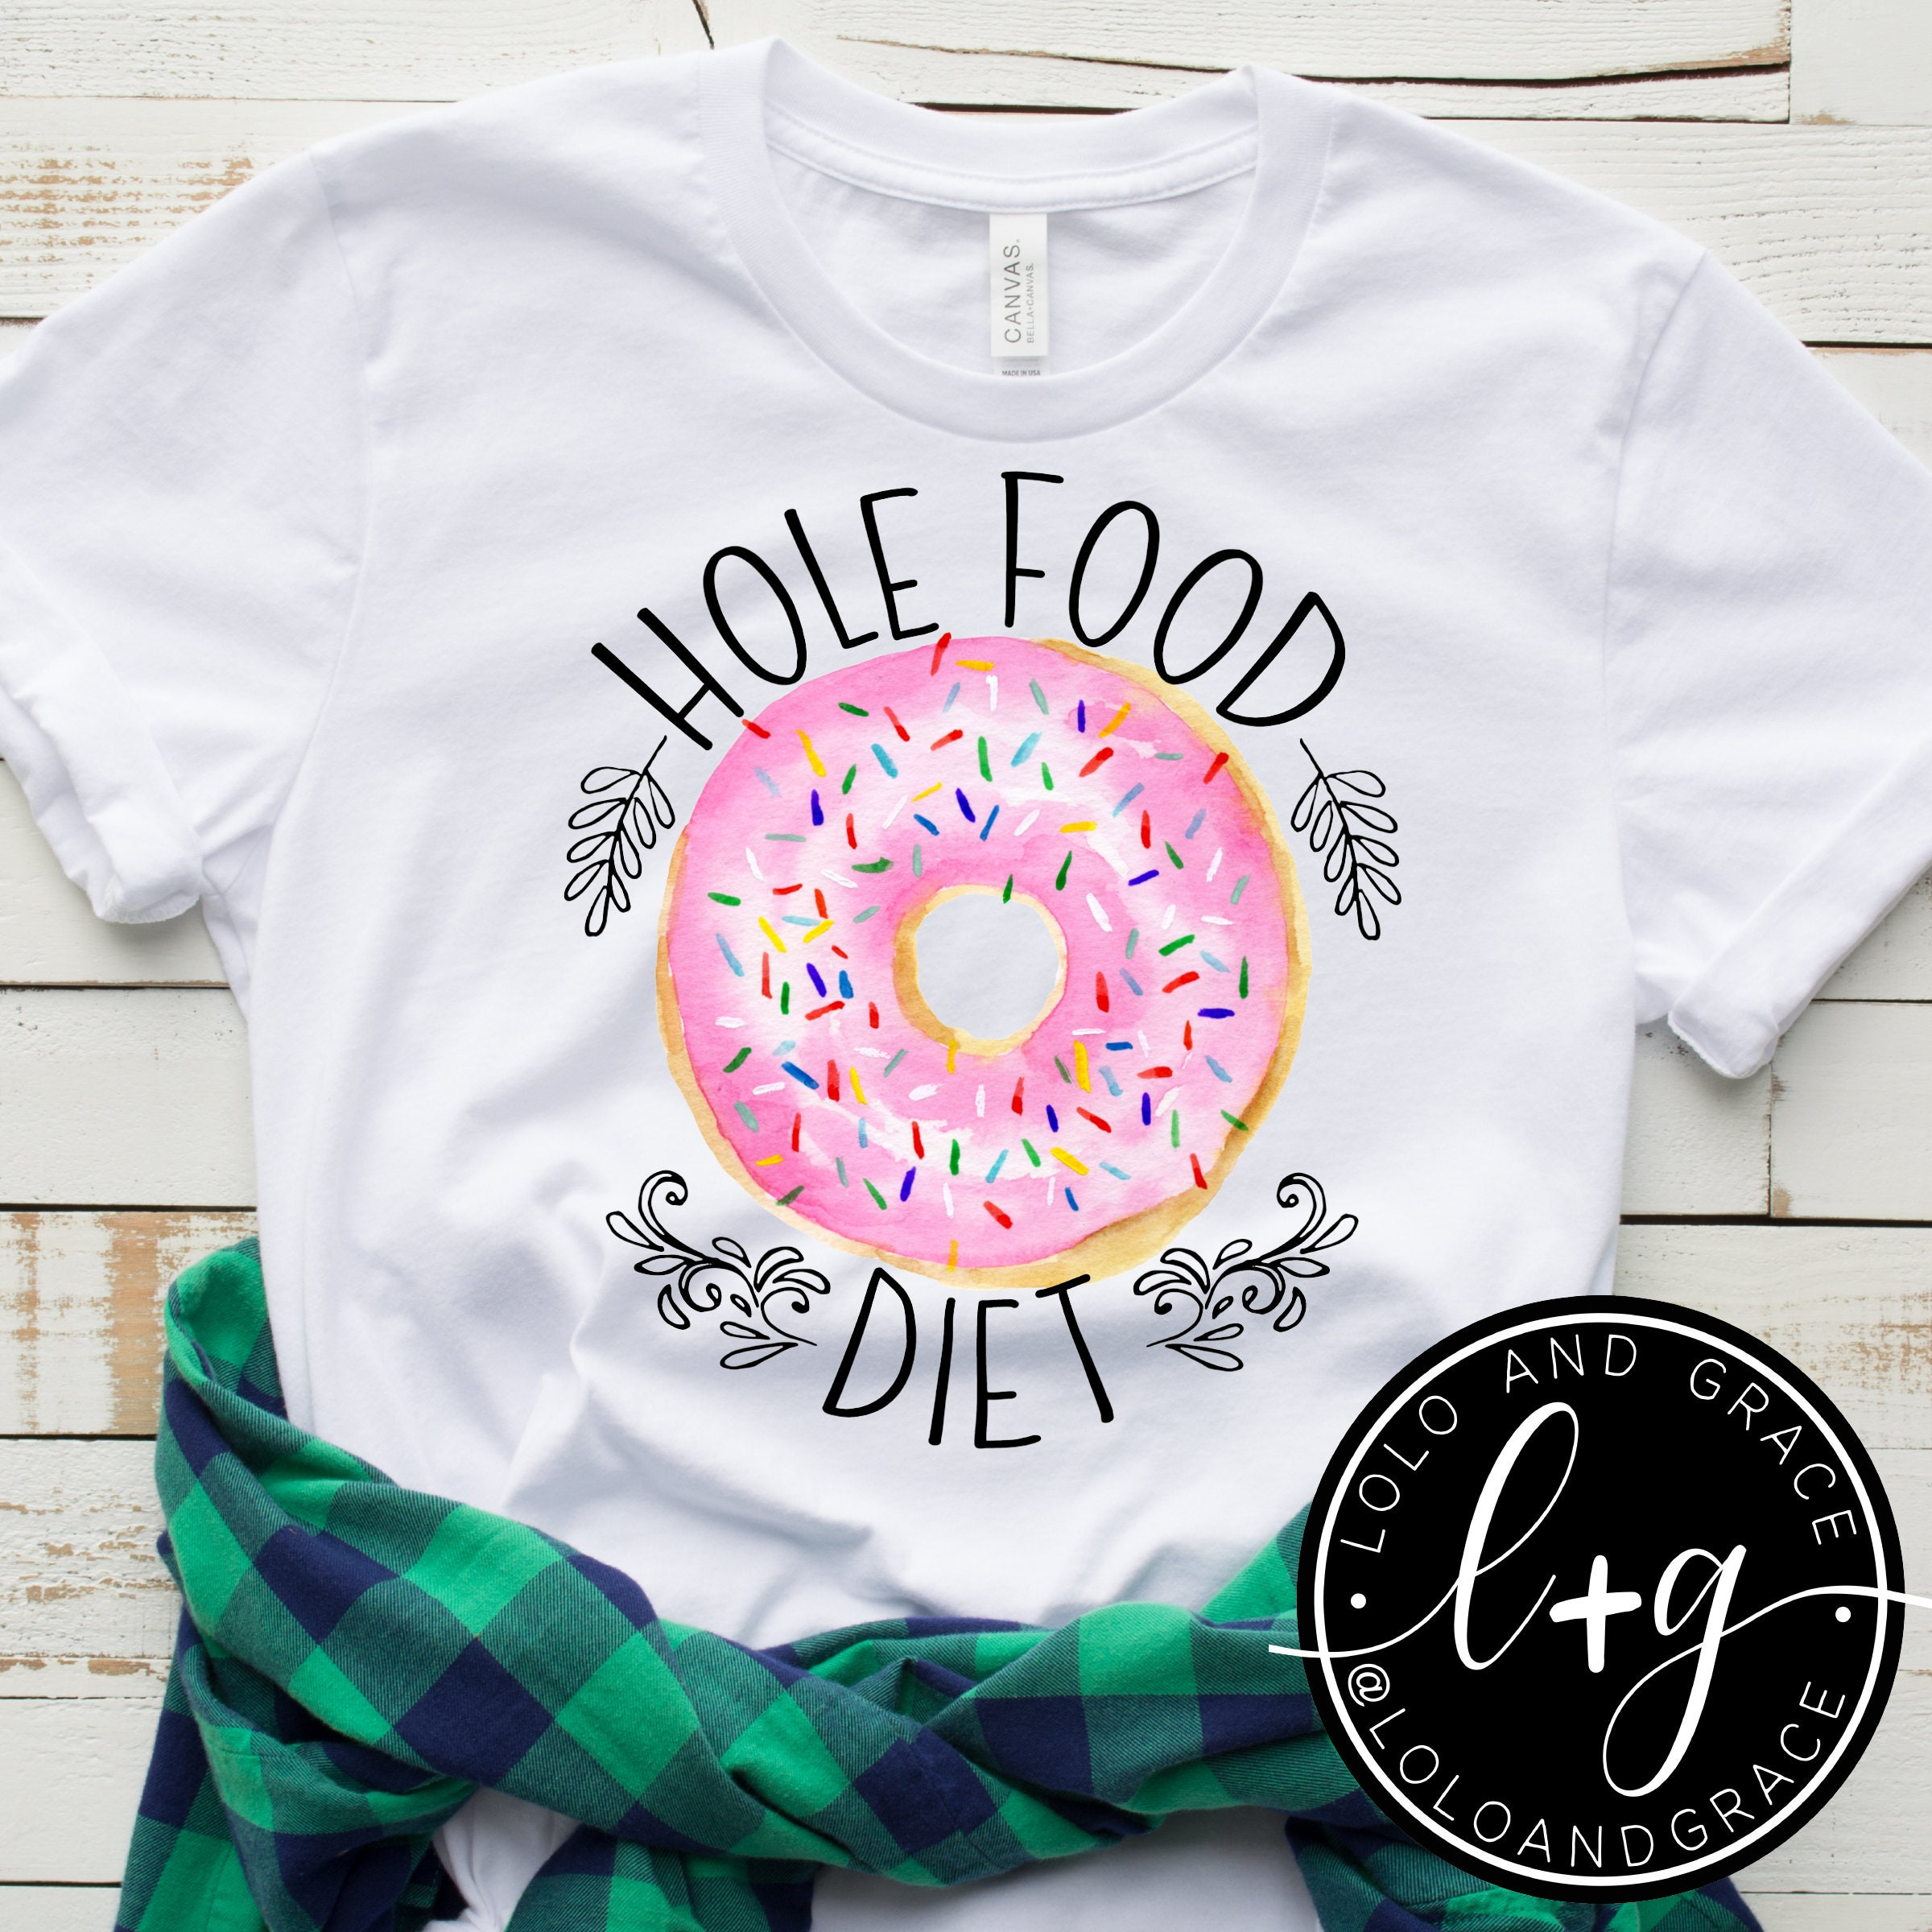 6c0160121 Funny Donut T-Shirt / Funny Diet Shirt / Funny Graphic Tees | Etsy